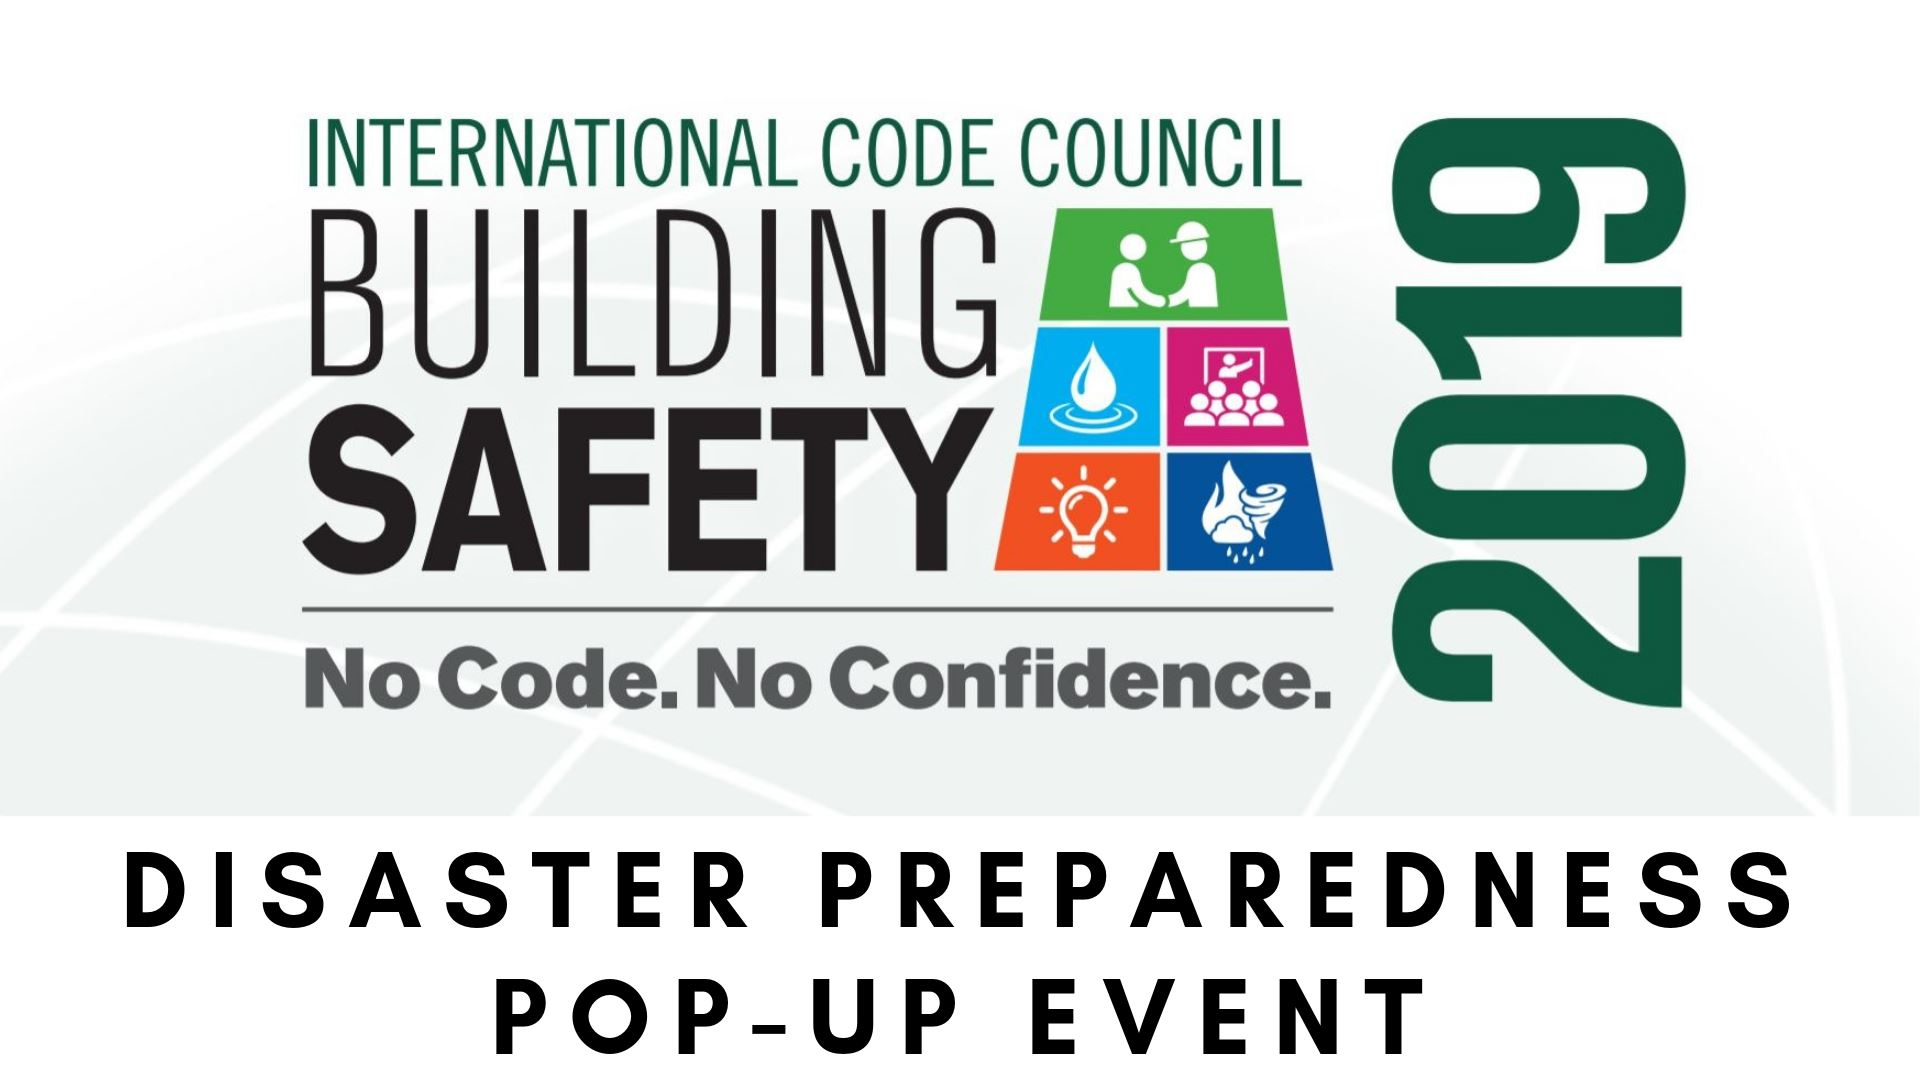 disaster preparedness pop-up event